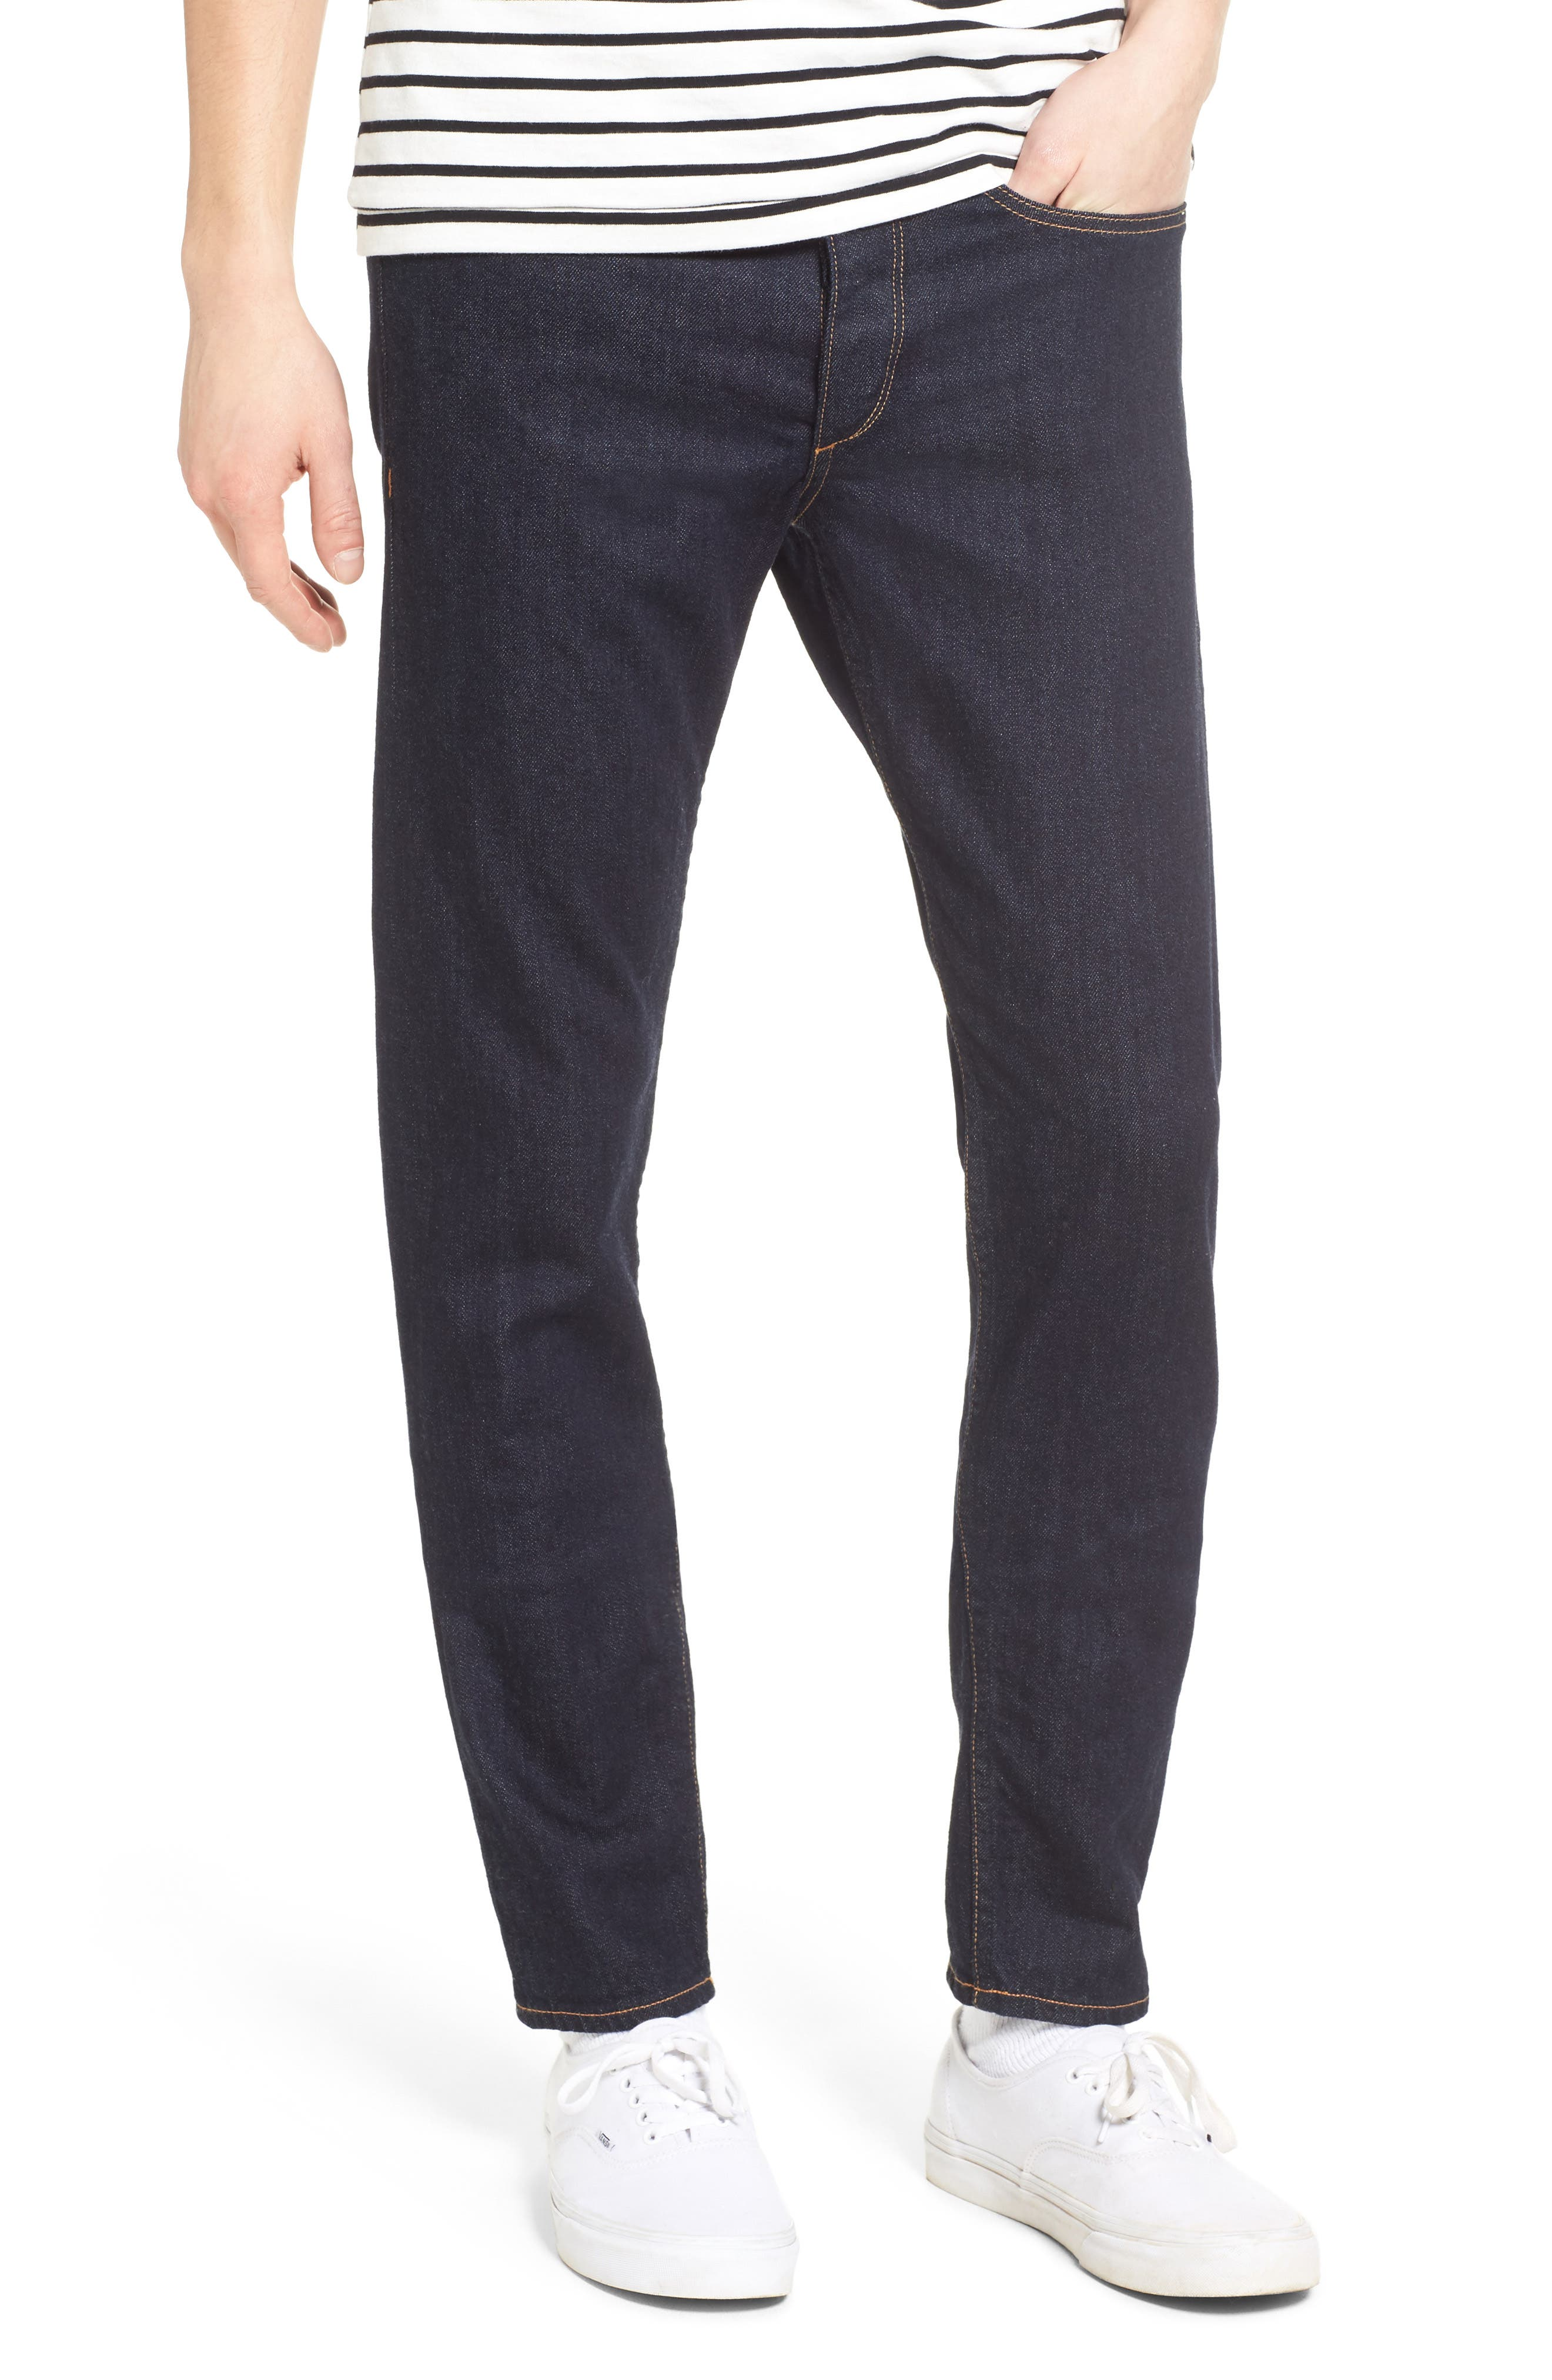 Standard Issue Fit 1 Skinny Fit Jeans,                             Main thumbnail 1, color,                             476